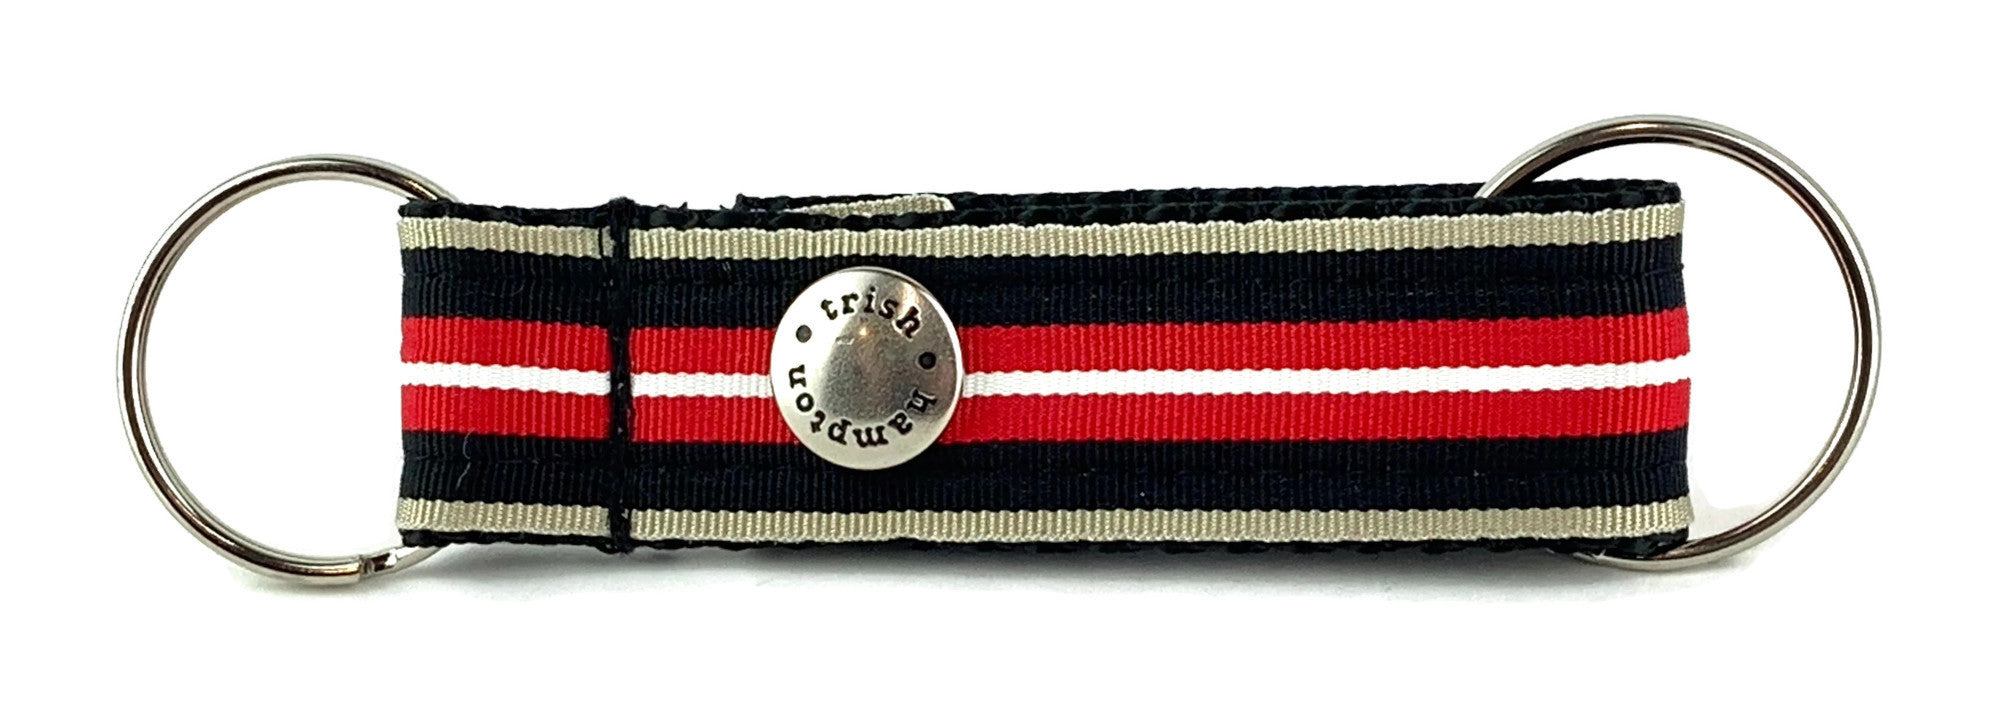 Red/Black/Tan Stripe Snappy Keychain - 606